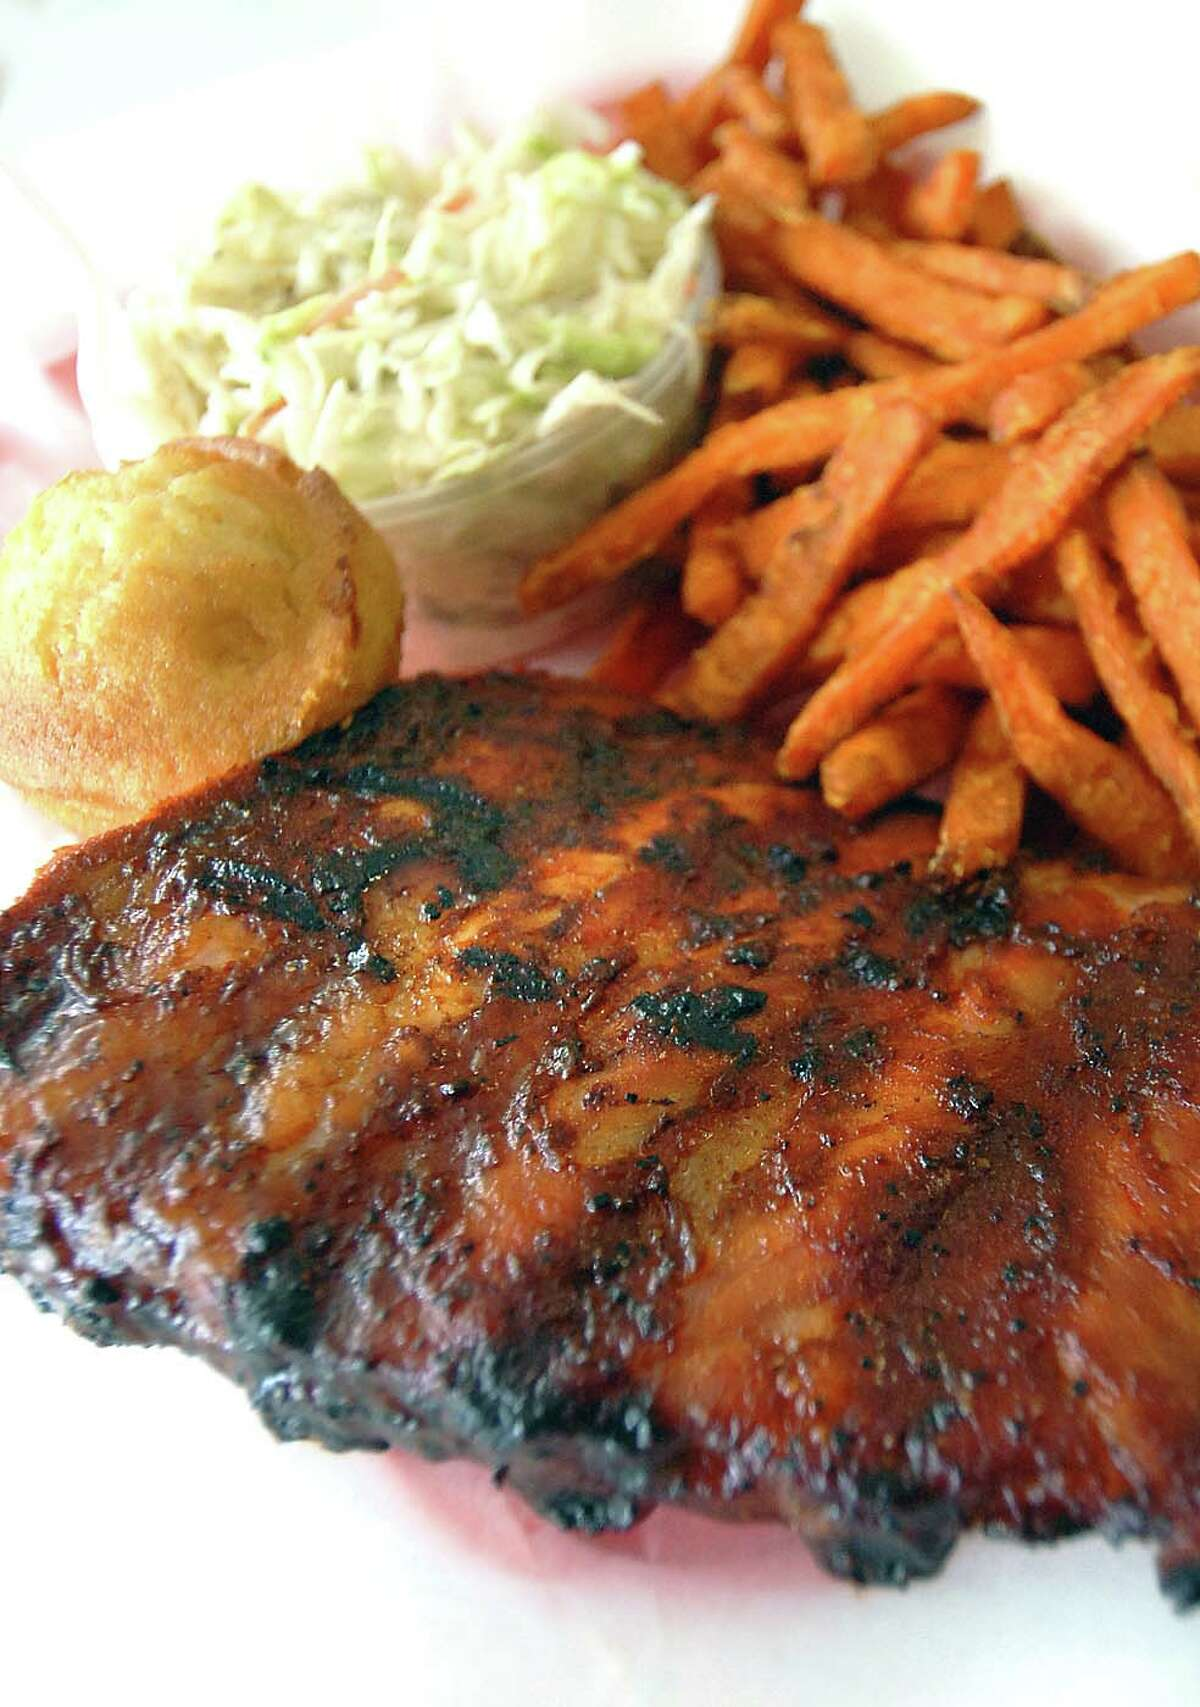 Click through the slideshow to find out where readers told us you can get the best barbecue around, according to our Best of the Capital Region reader poll.